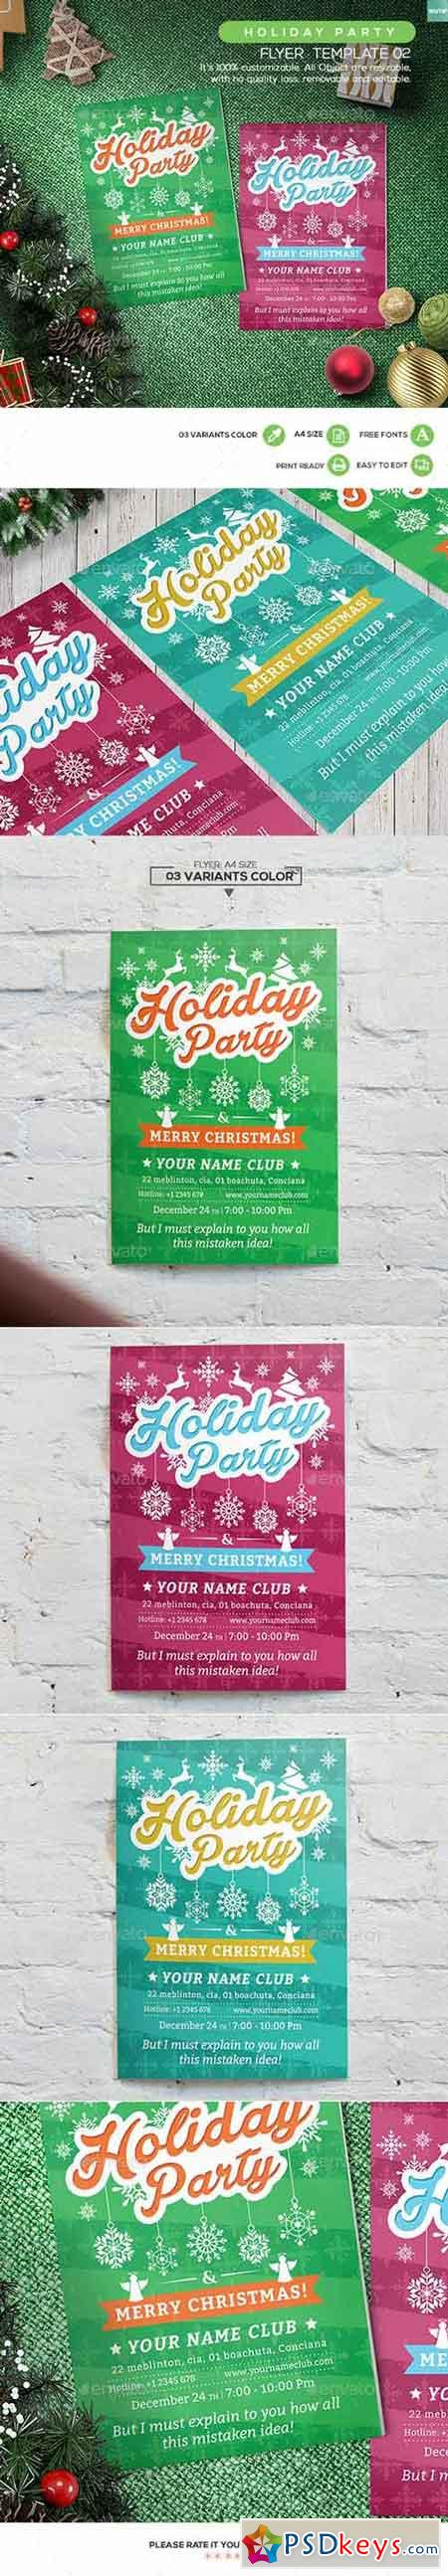 holiday party flyers free templates